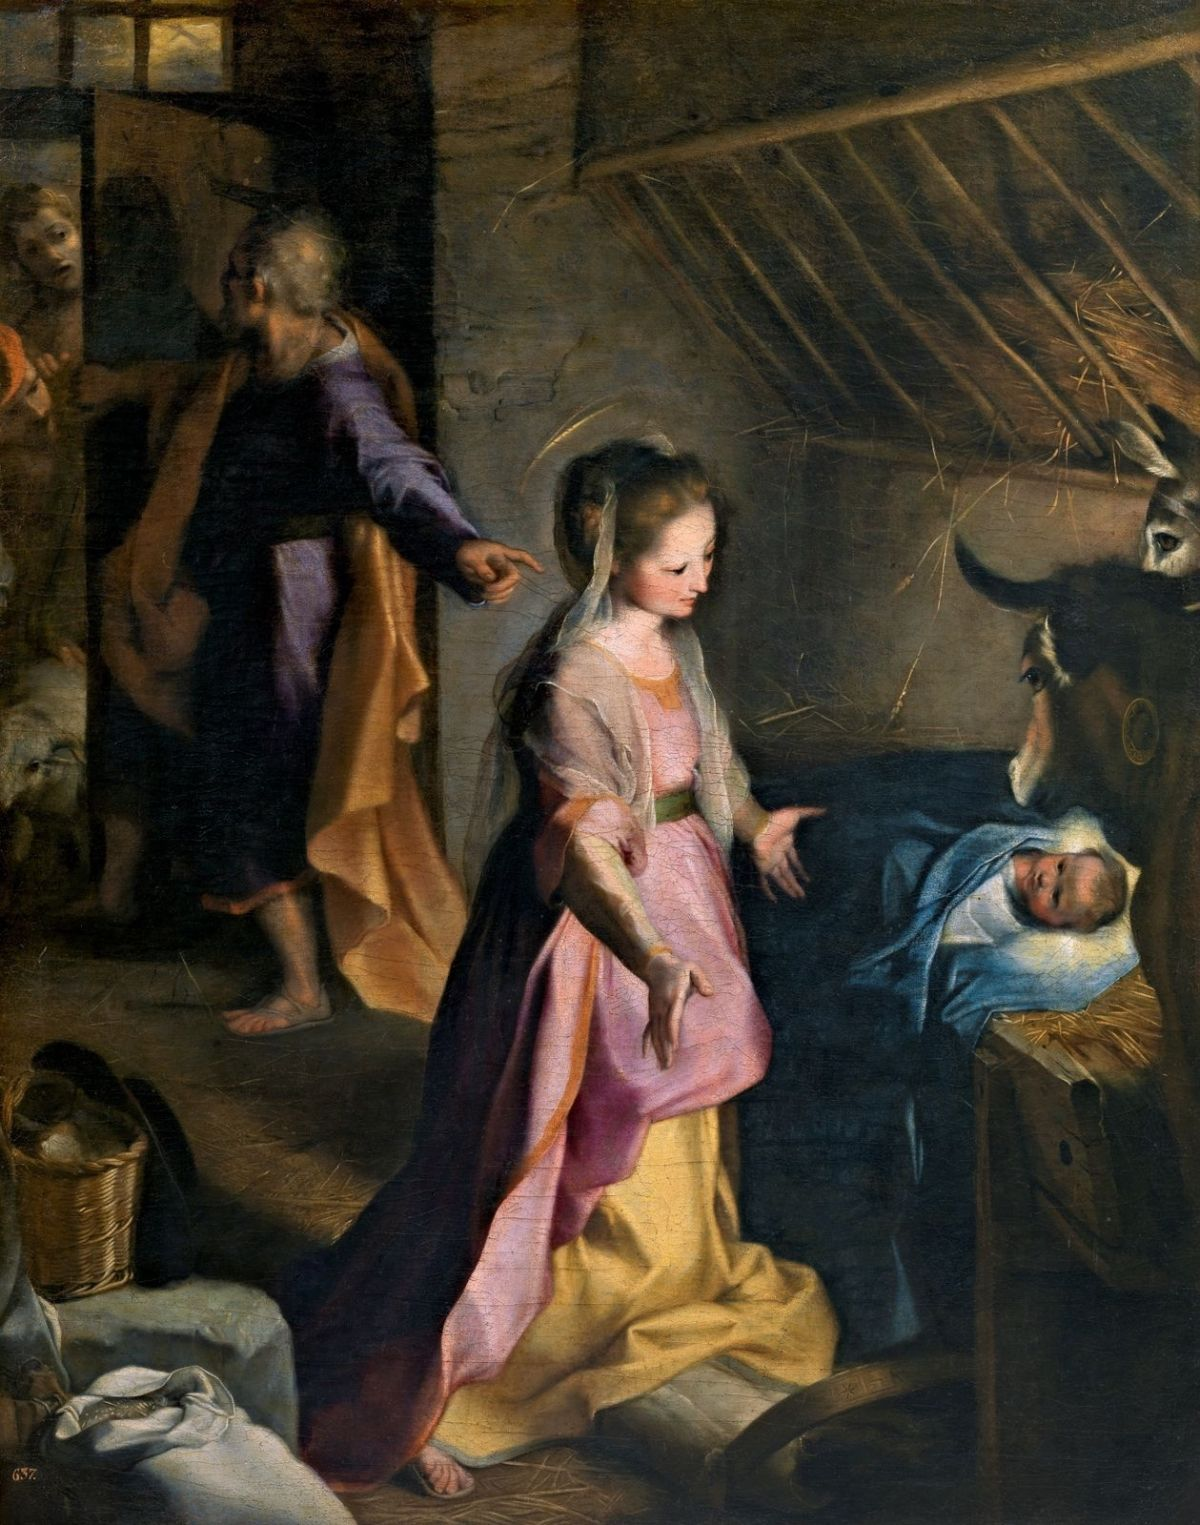 The Nativity by Federico Fiori Barocci